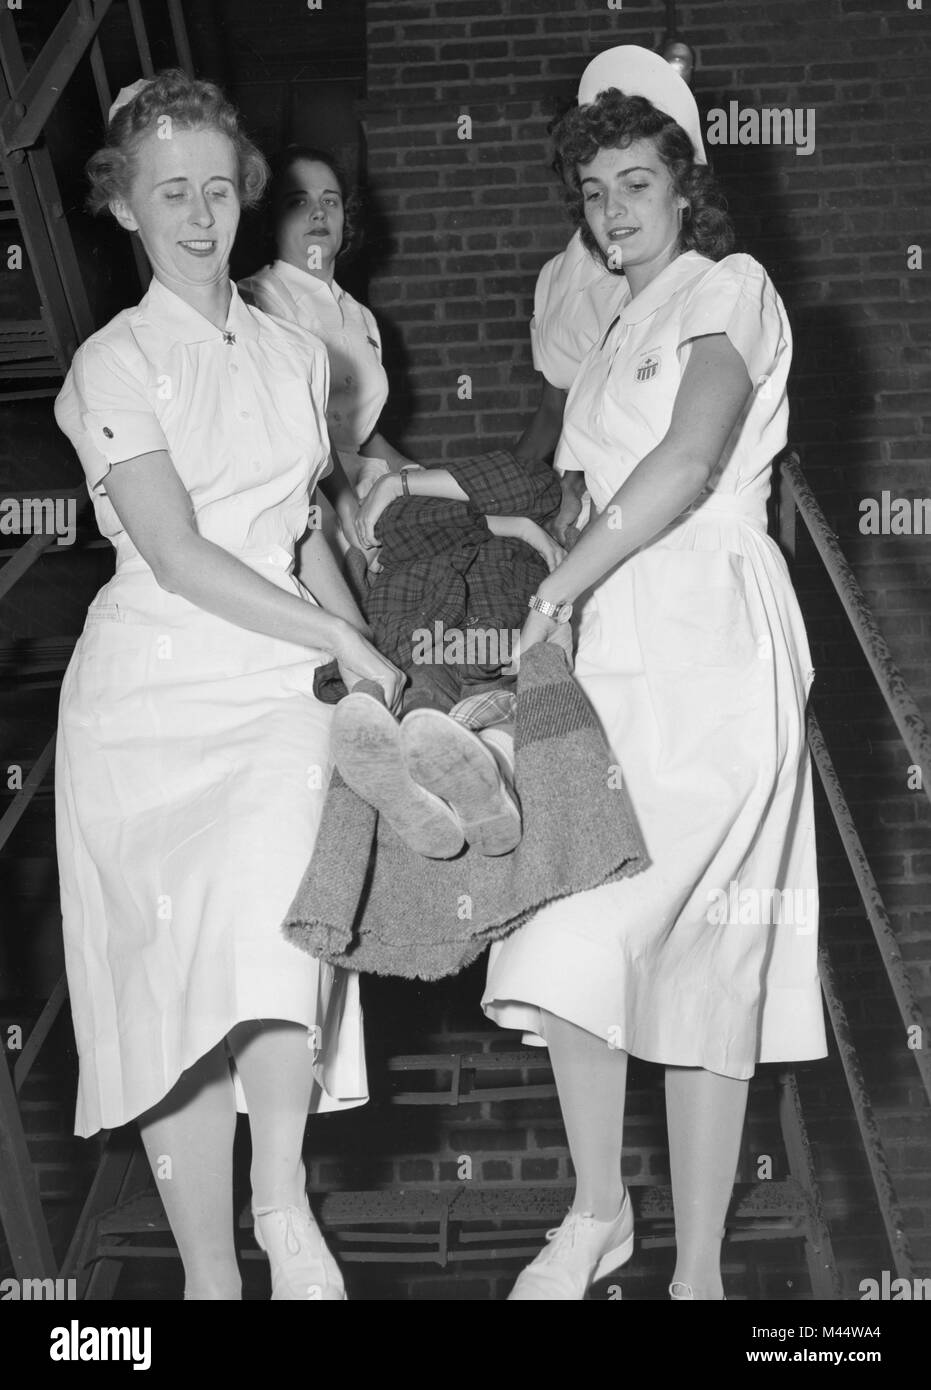 Nurses scramble down a fire escape with a patient during a mock fire drill, ca. 1958. Stock Photo